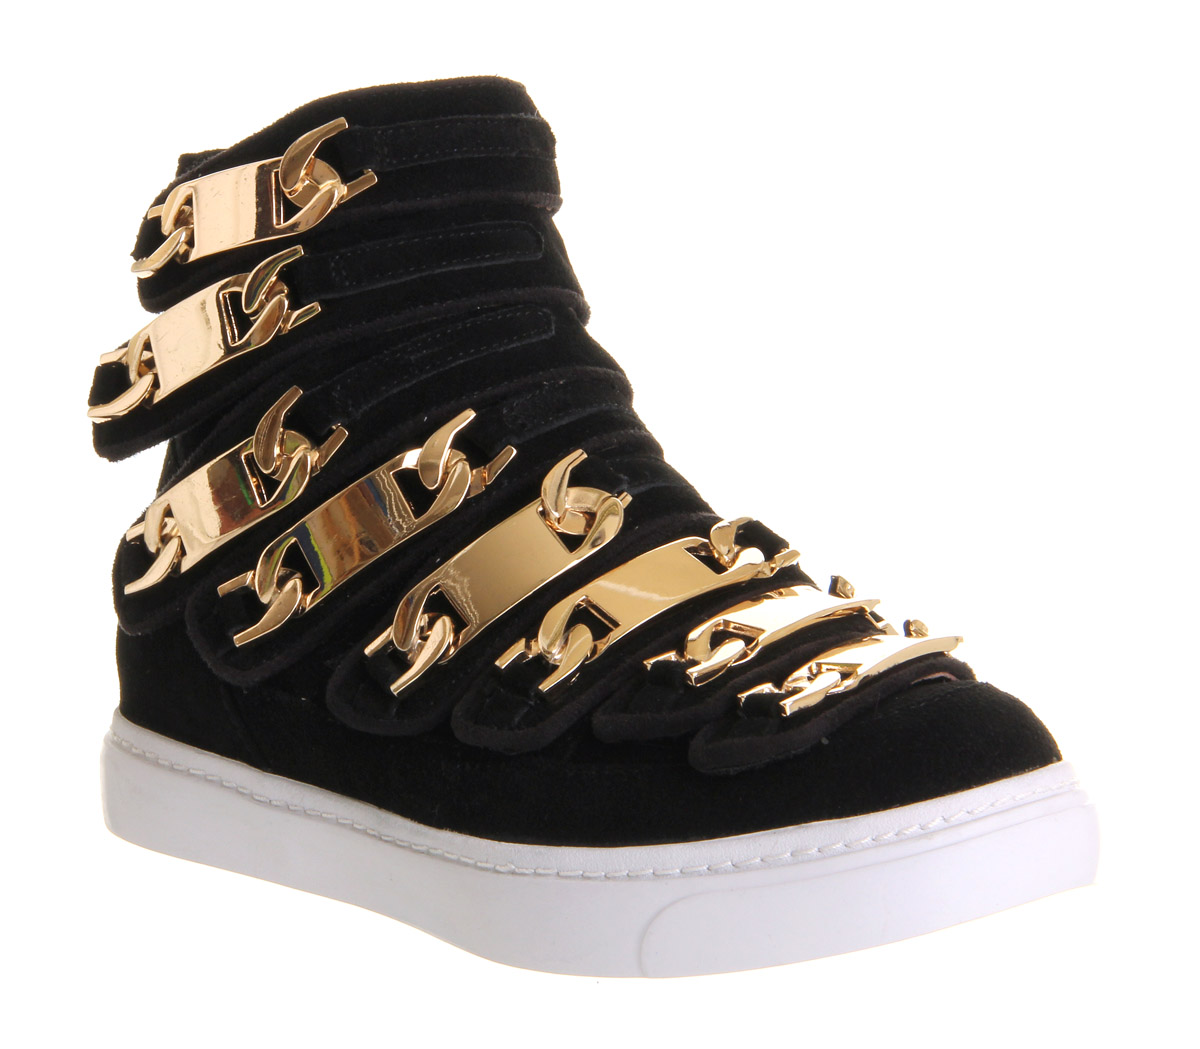 a82d10ce3107 adidas black and gold high tops